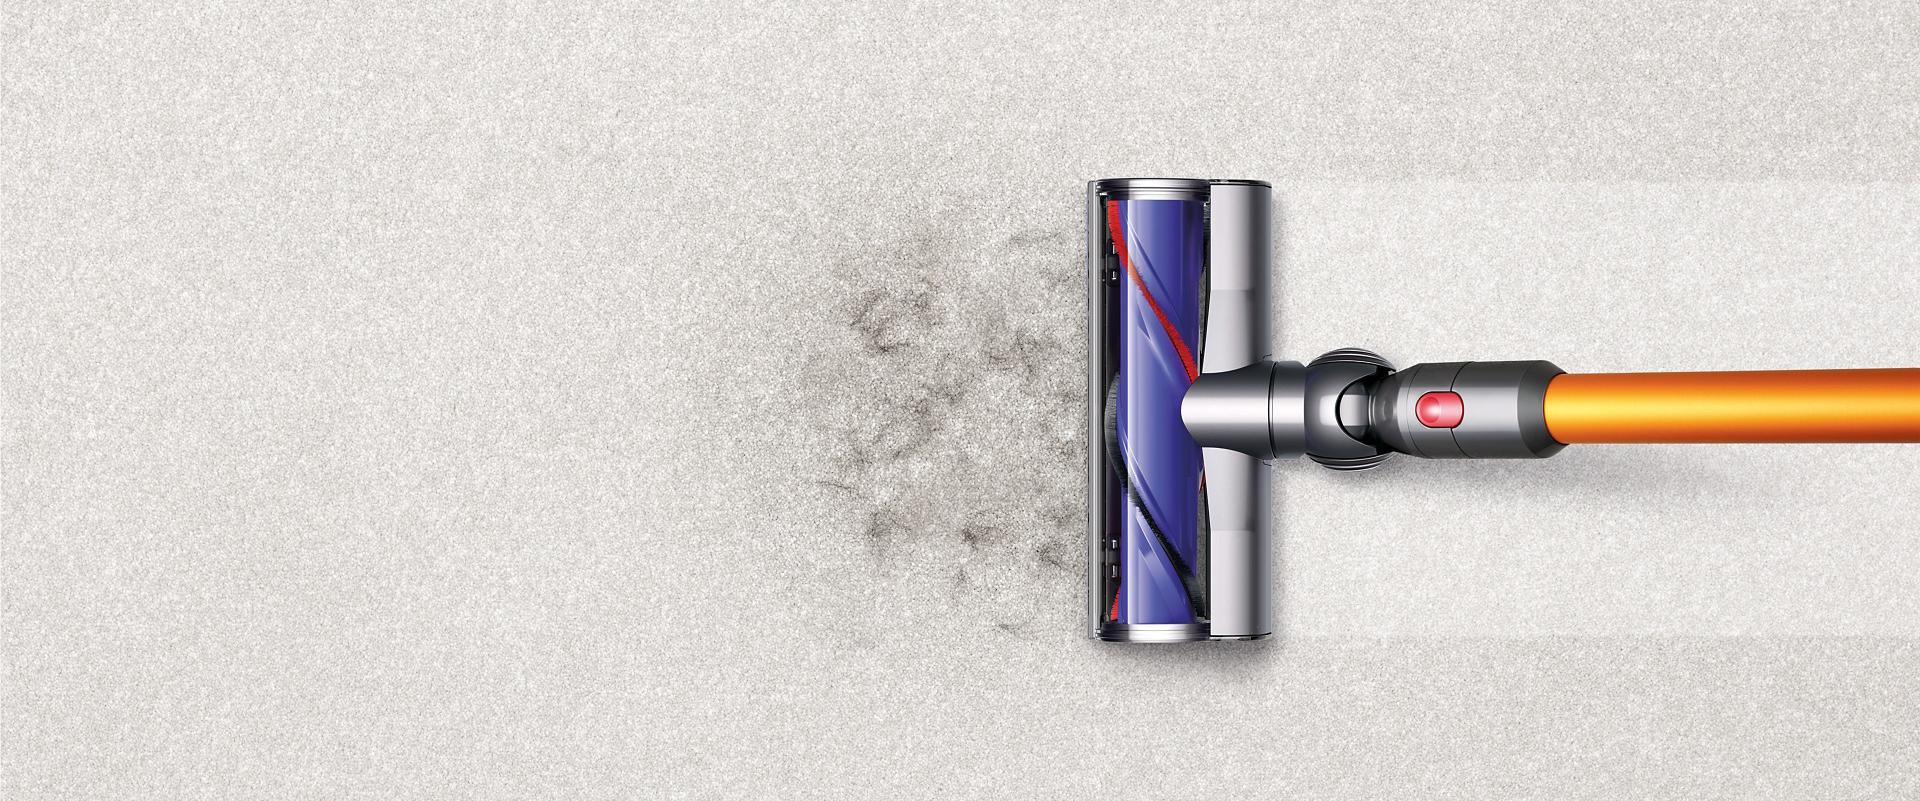 Dyson V8 cleaner head picking up debris from carpet